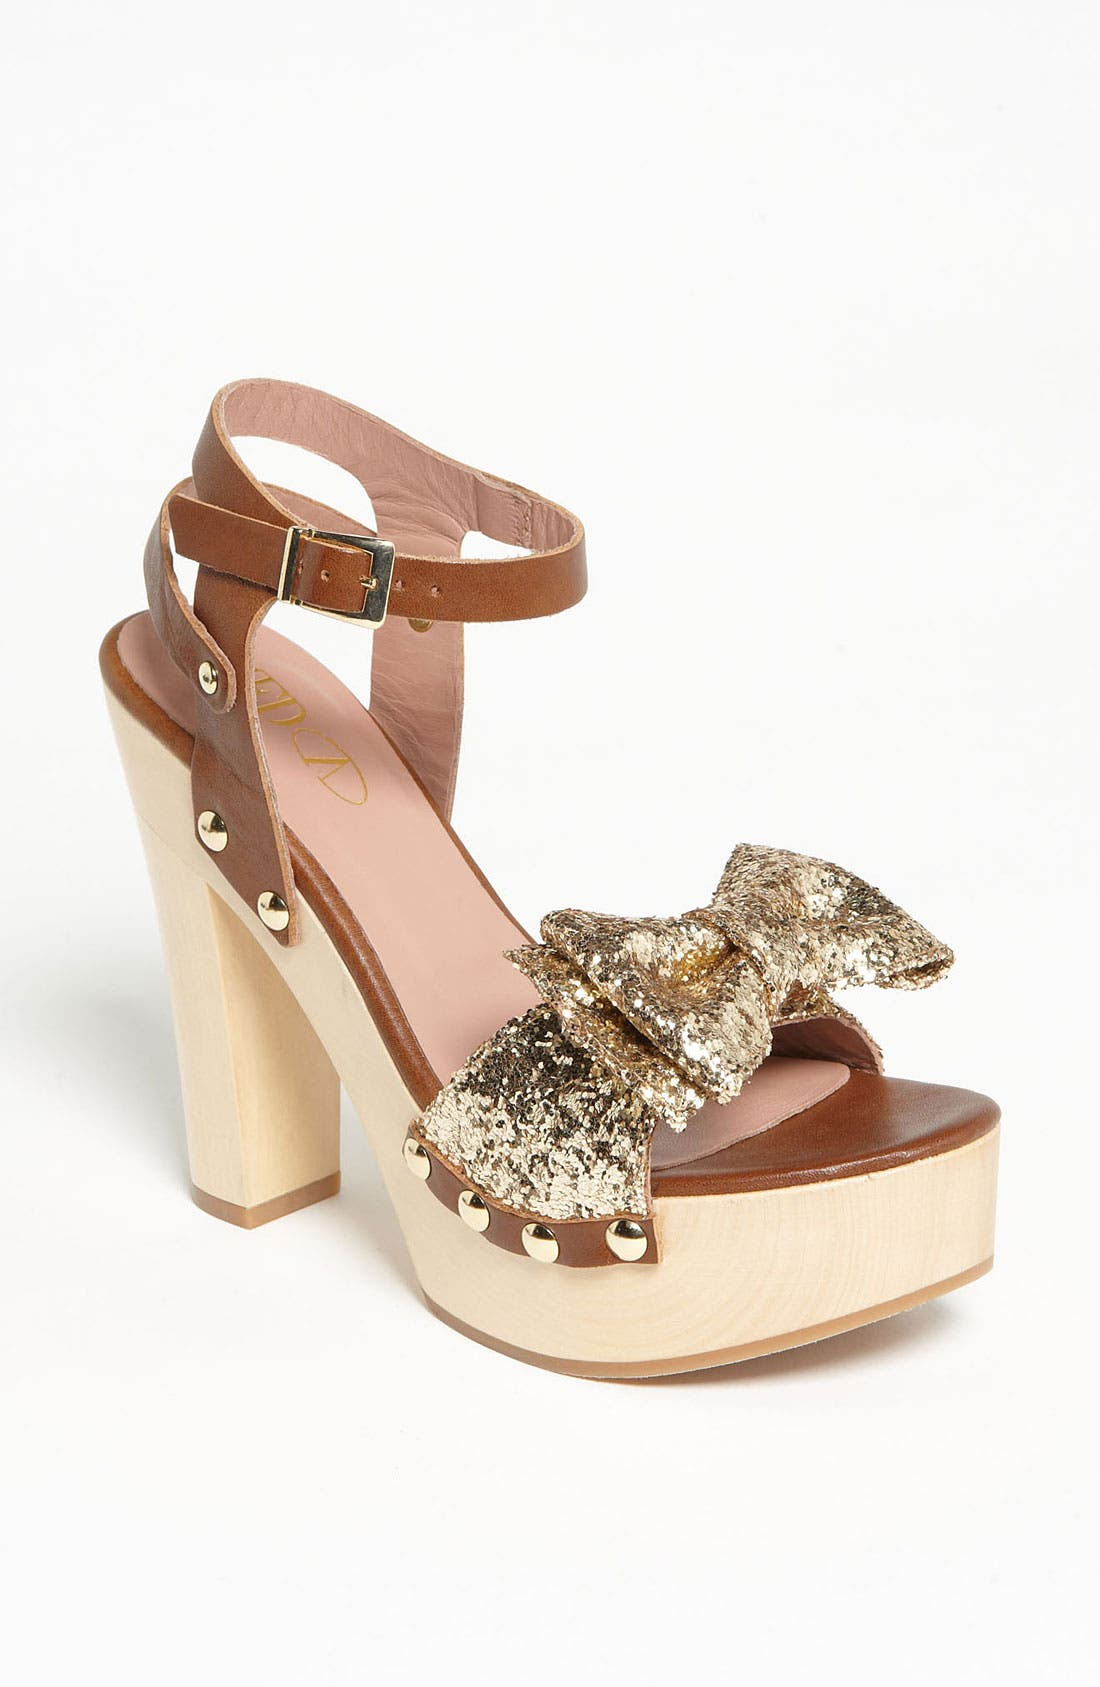 Alternate Image 1 Selected - RED Valentino Gold Glitter Sandal